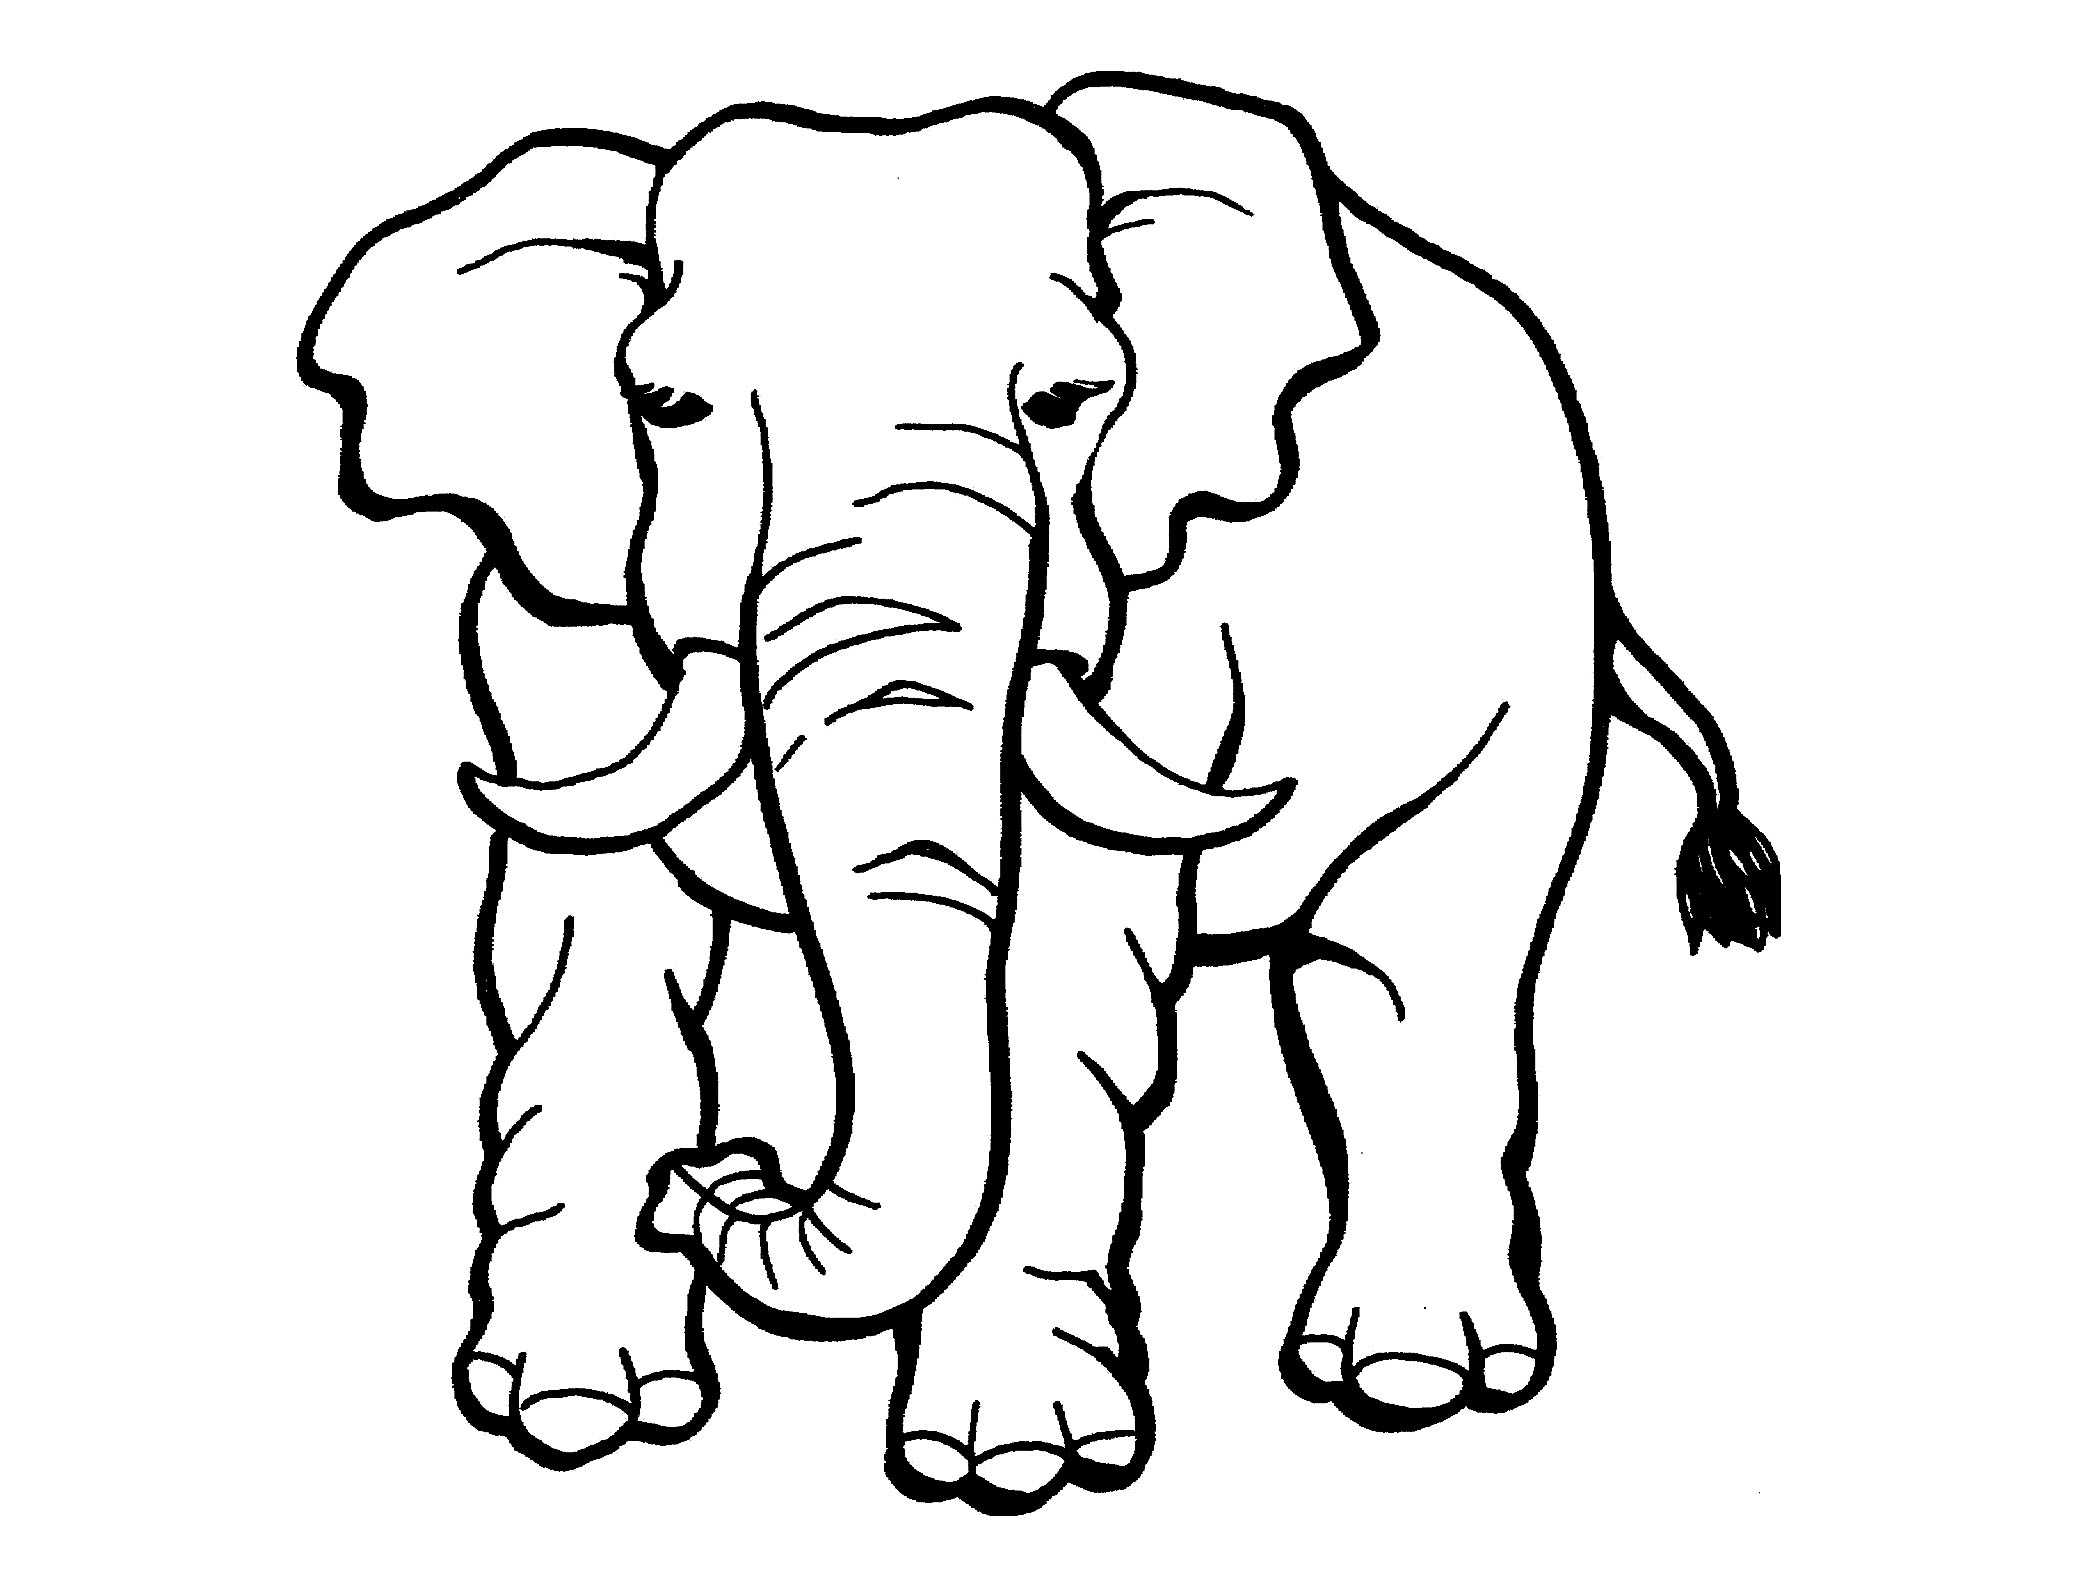 colouring pictures of elephant elephants to print for free elephants kids coloring pages pictures of elephant colouring